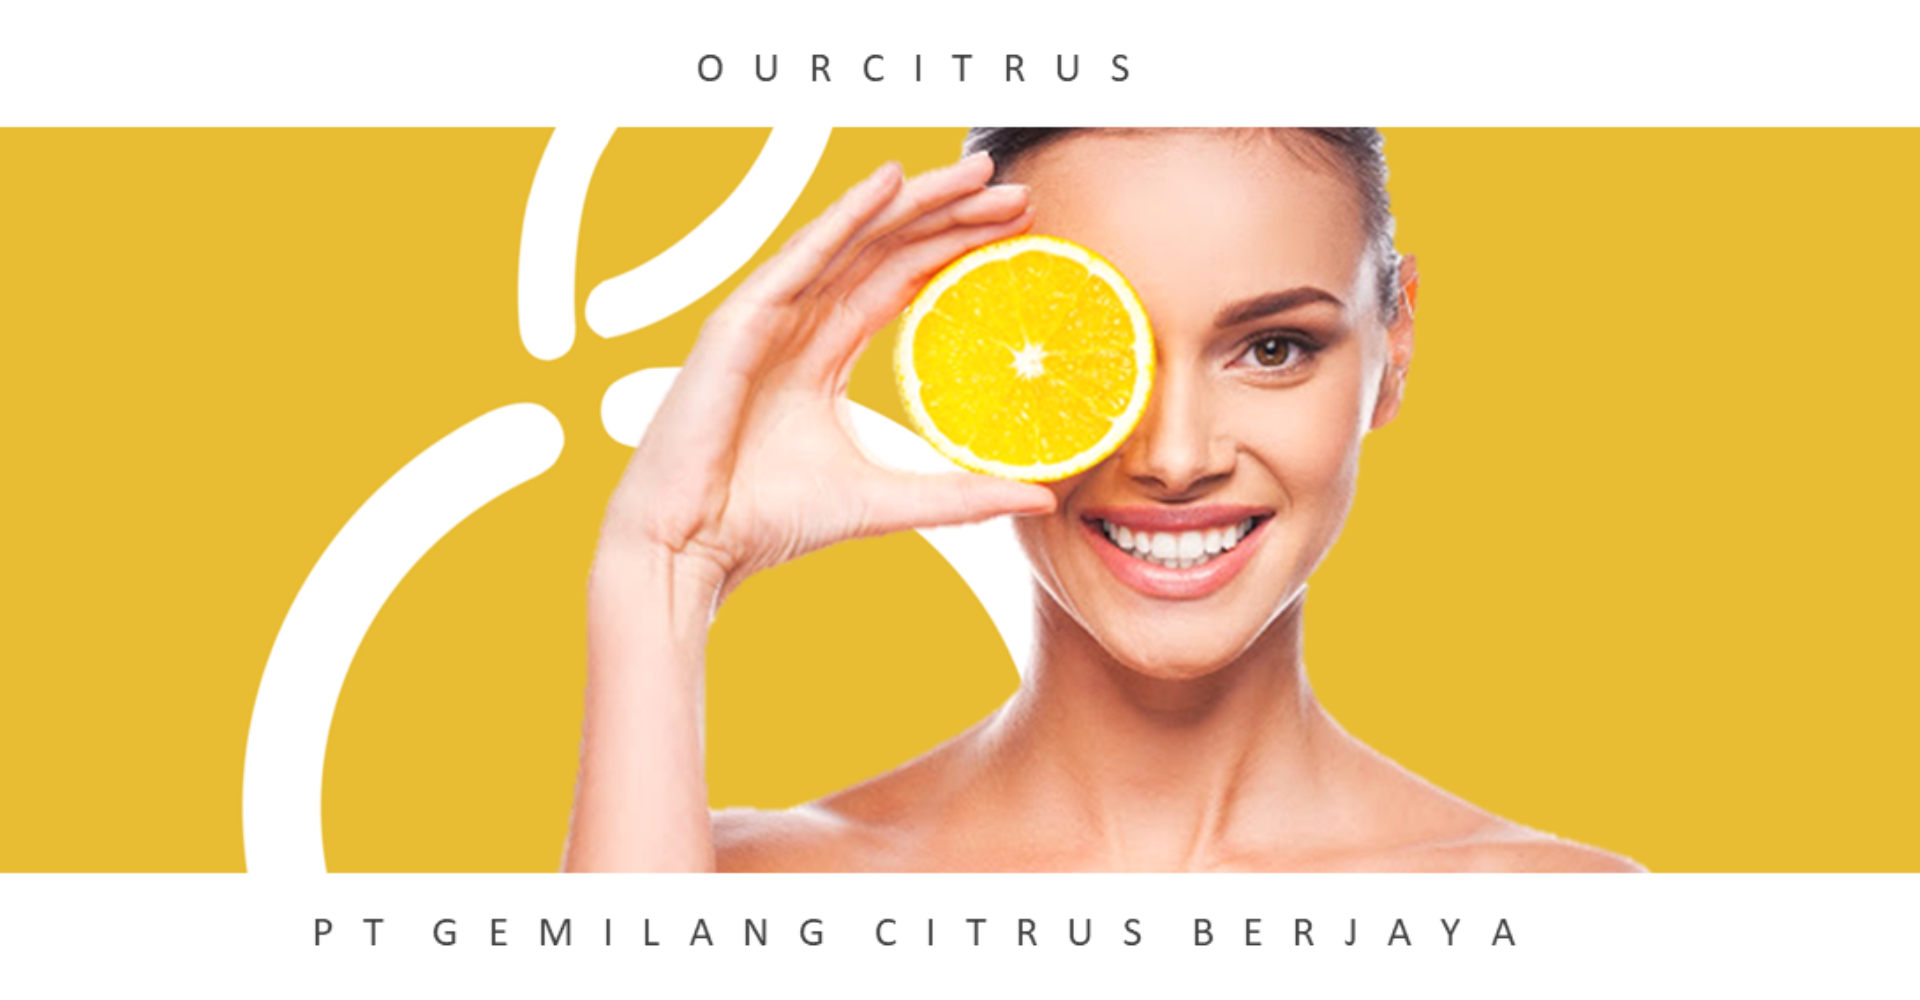 mlm ourcitrus